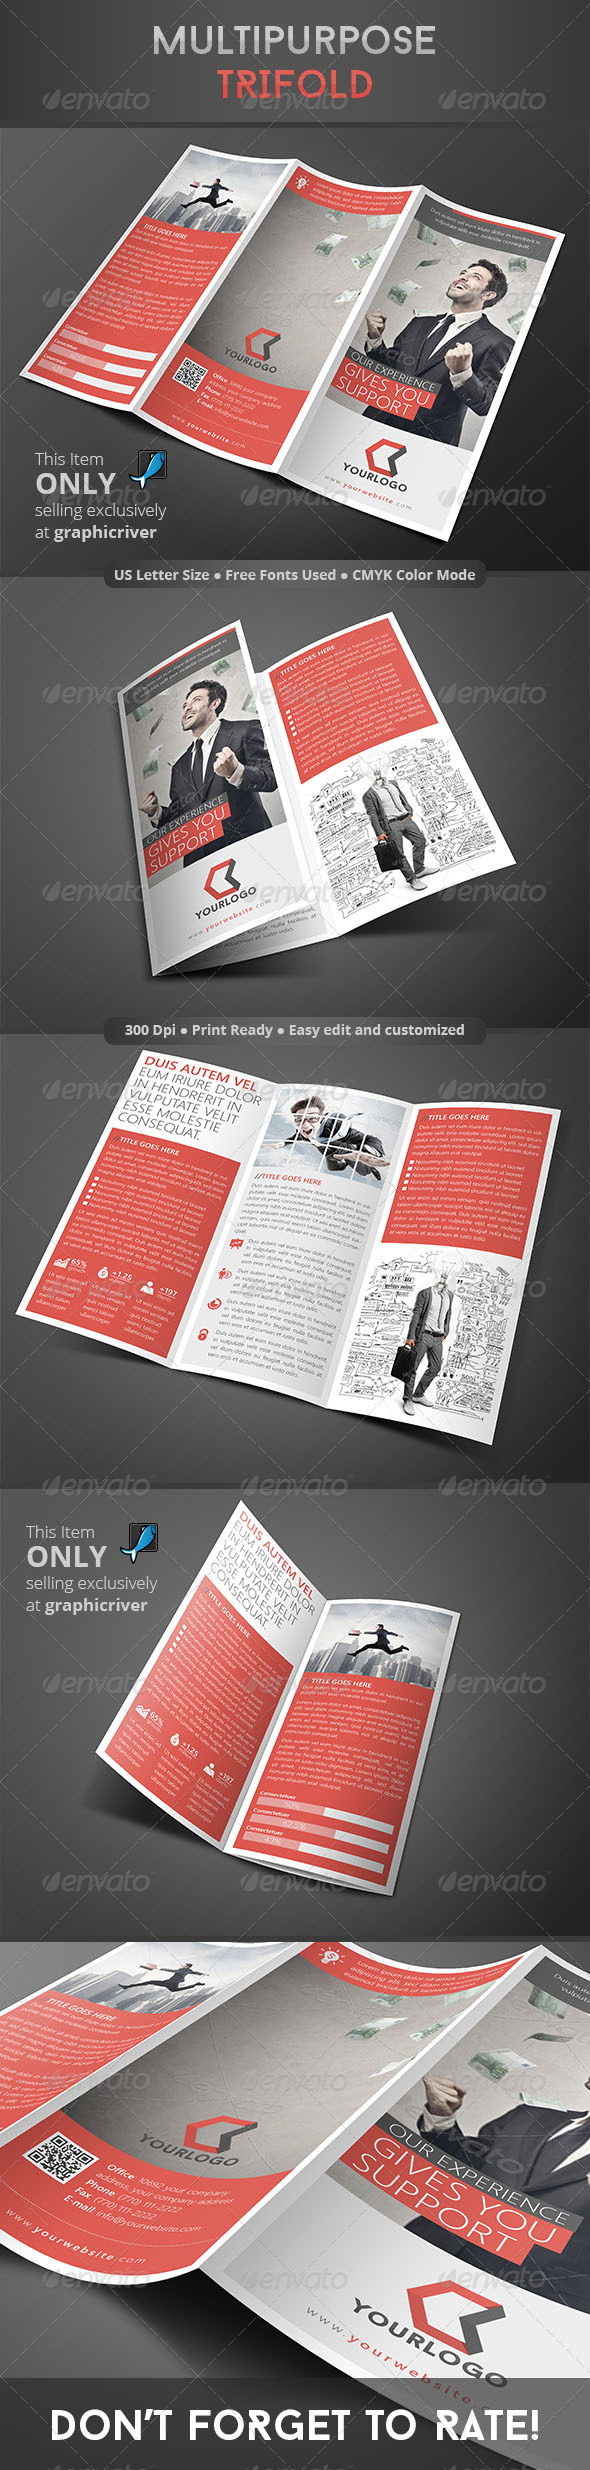 GraphicRiver Multipurpose Trifold 8350738